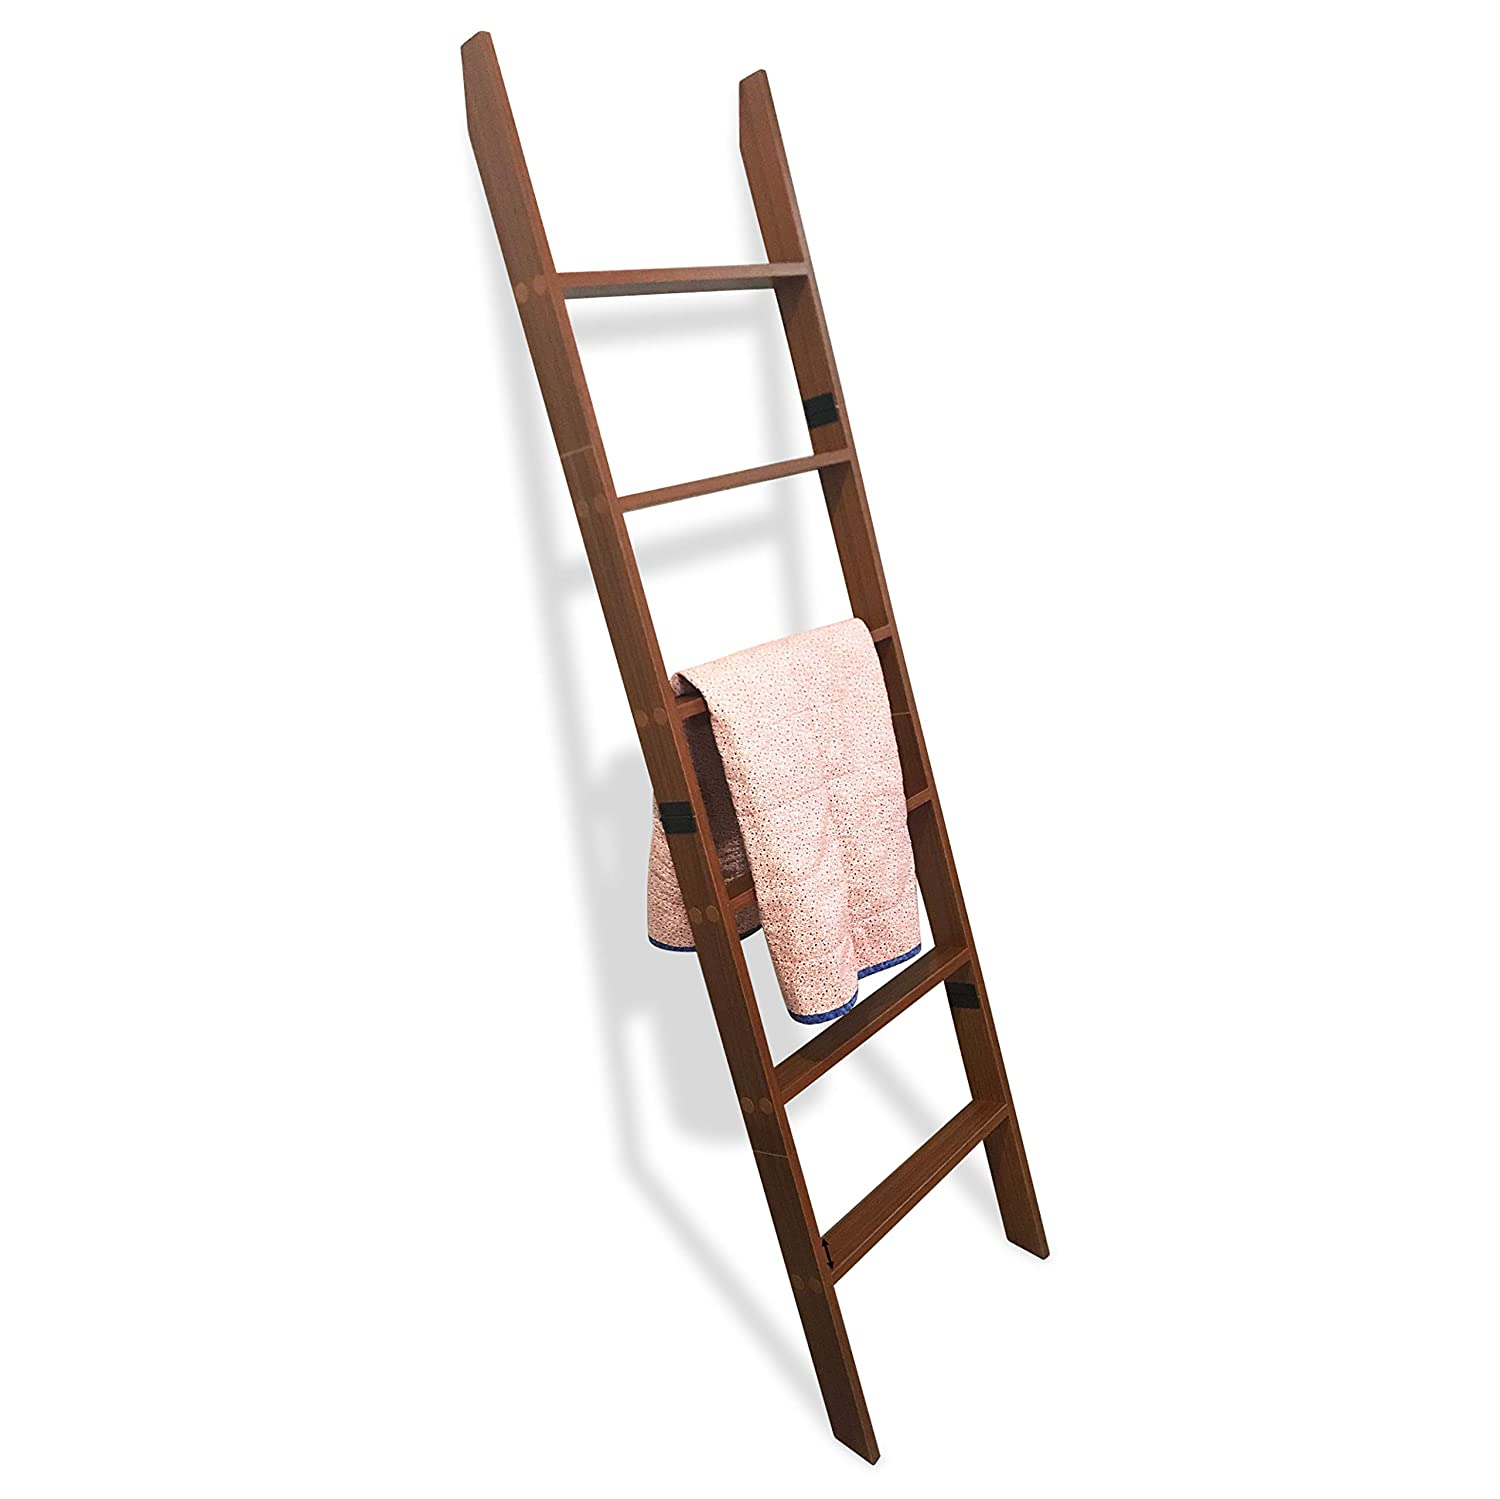 RELODECOR 6-Foot Wall Leaning Blanket Ladder| Laminate Snag Free Construction (Brown)